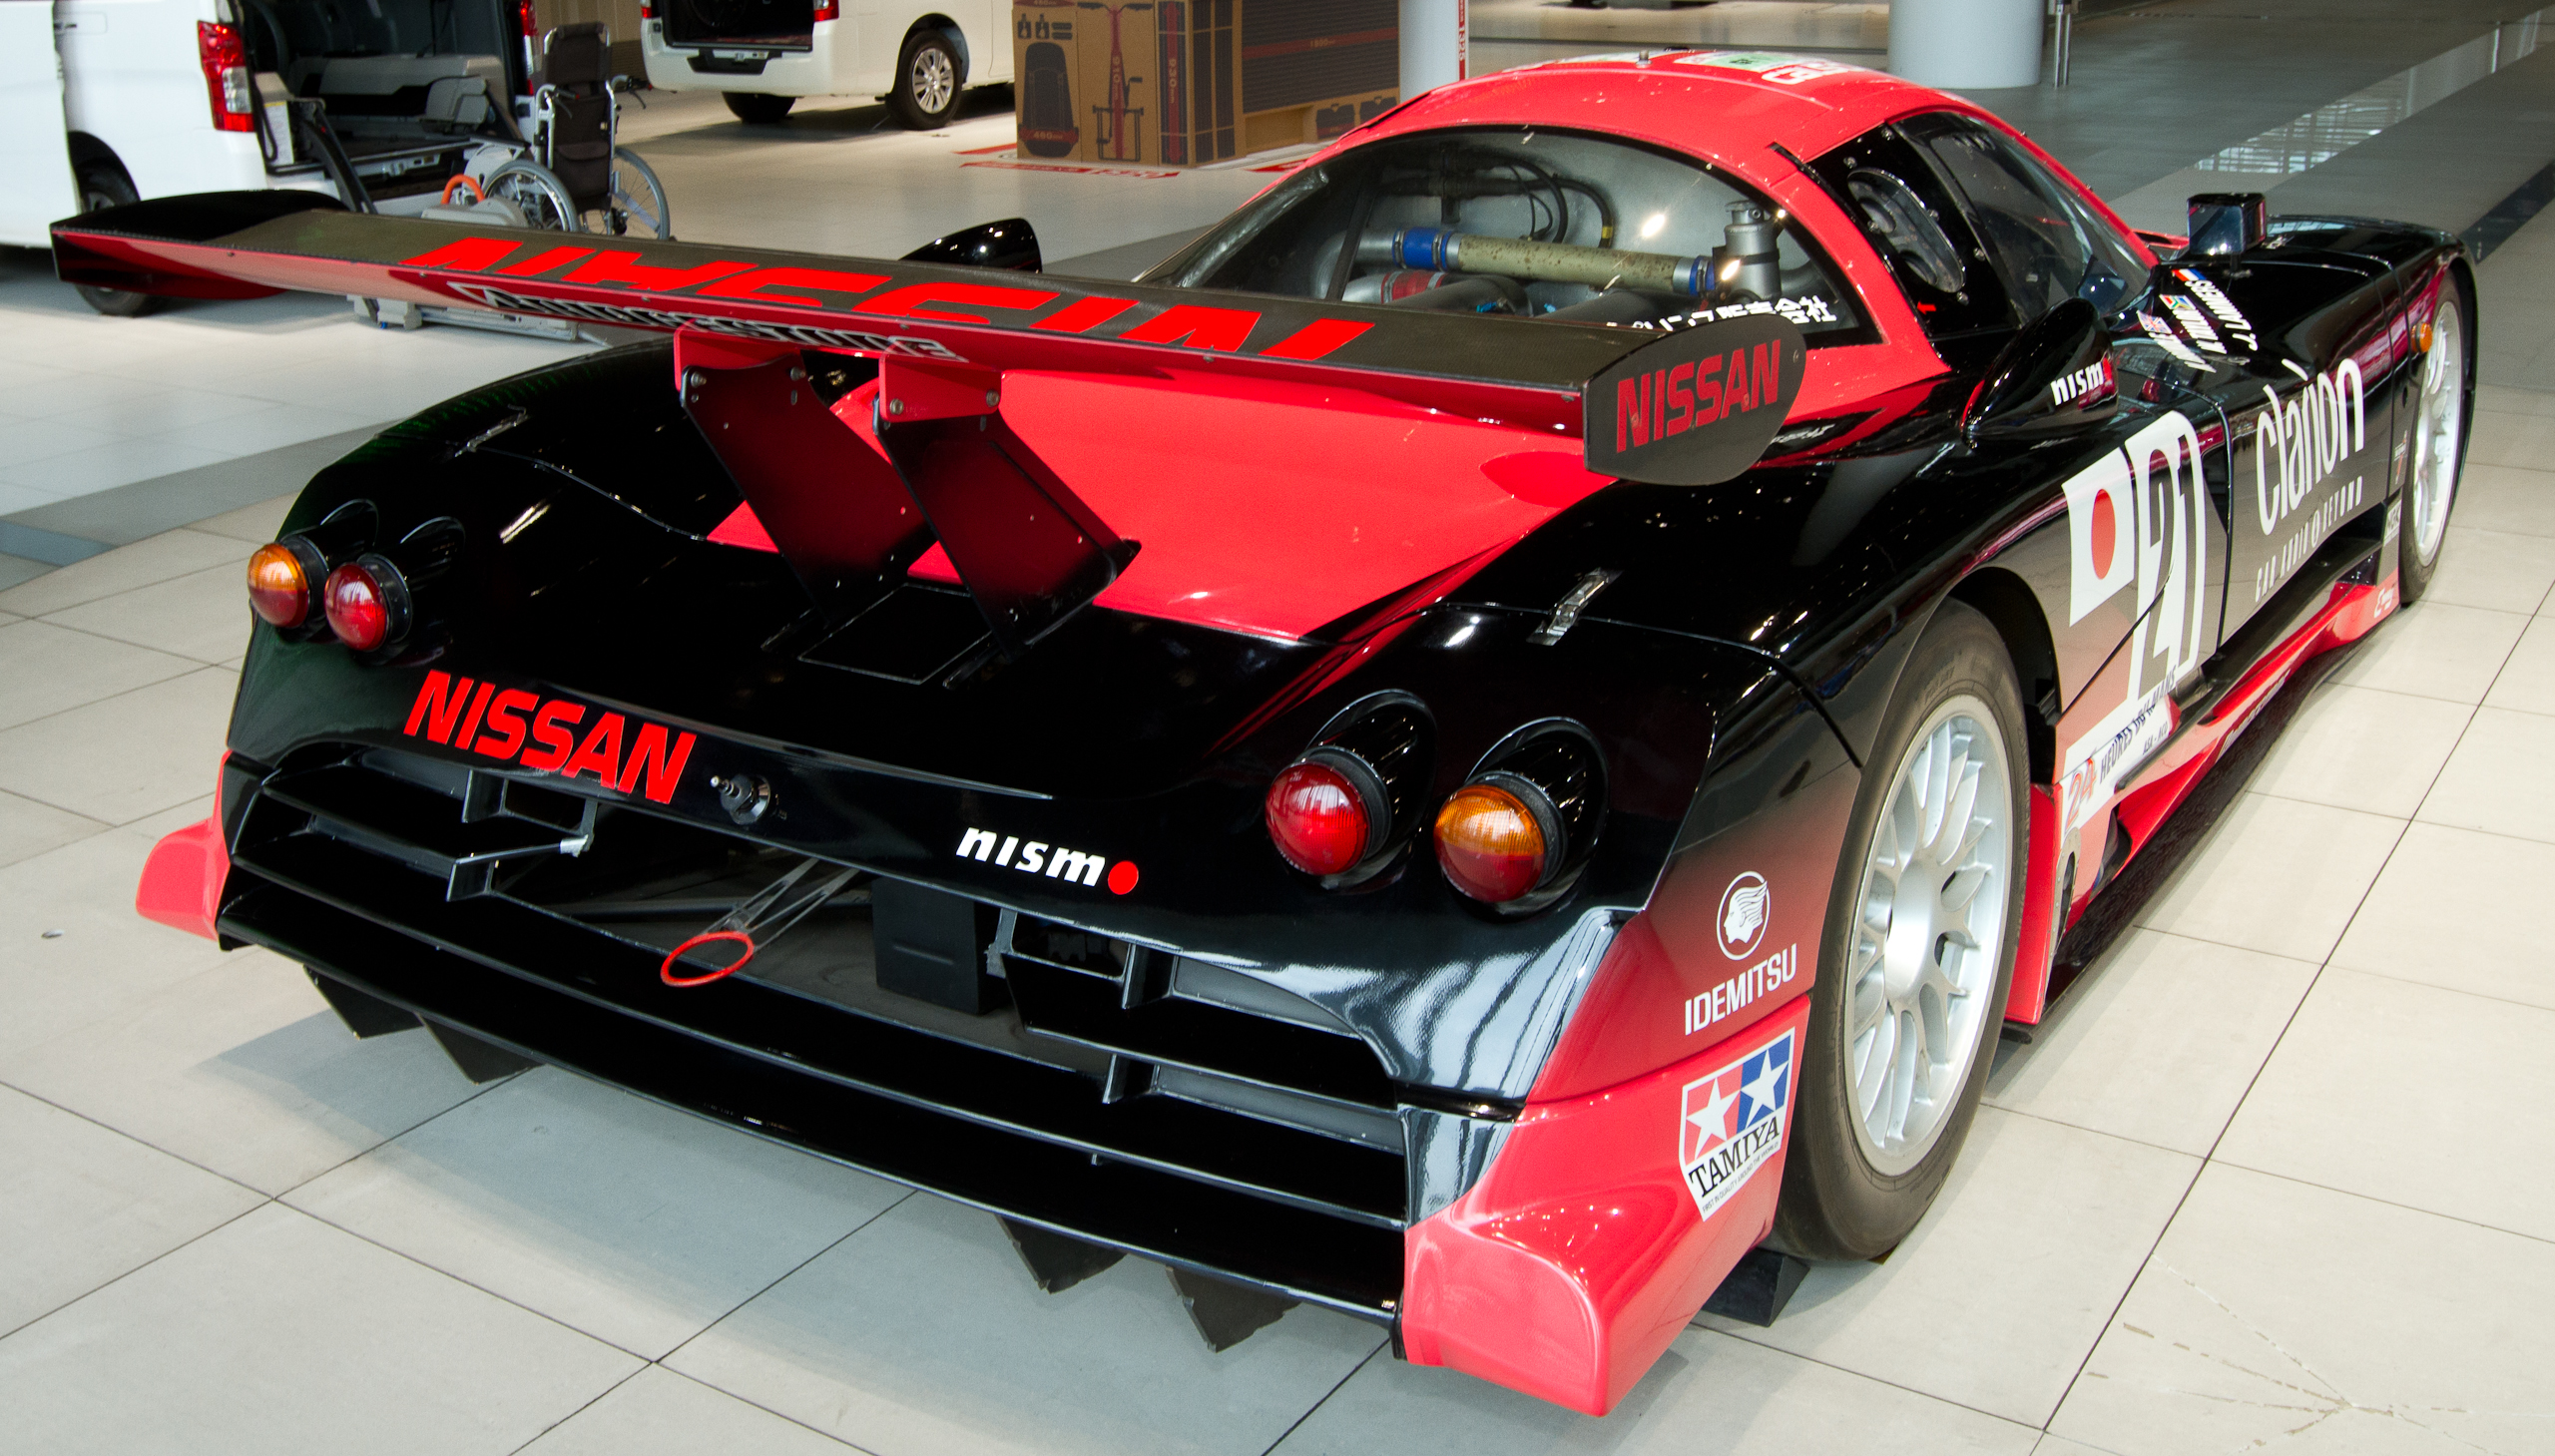 Image result for nissan r390 gt1 wikipedia